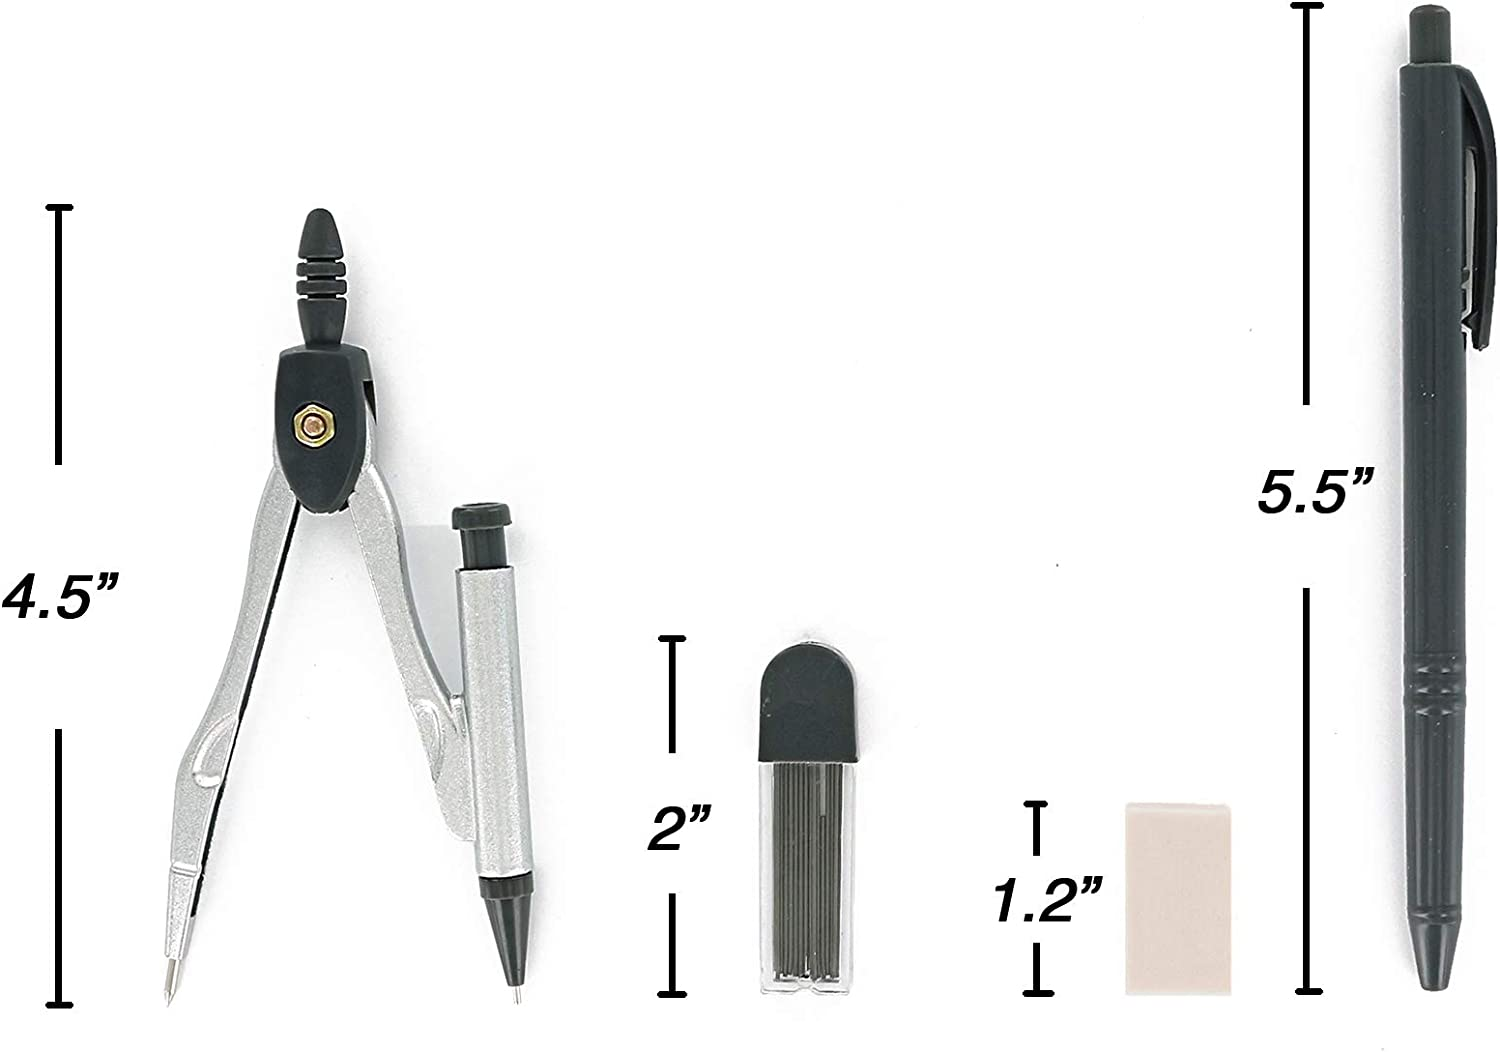 Great for School Emraw 9 Piece Math//Geometry Tool Set Includes: Scale-Arm Compass With a Pen Lead Pencil With Lead Refills /& Protractor Set 2-Pack Home /& Office - White Eraser